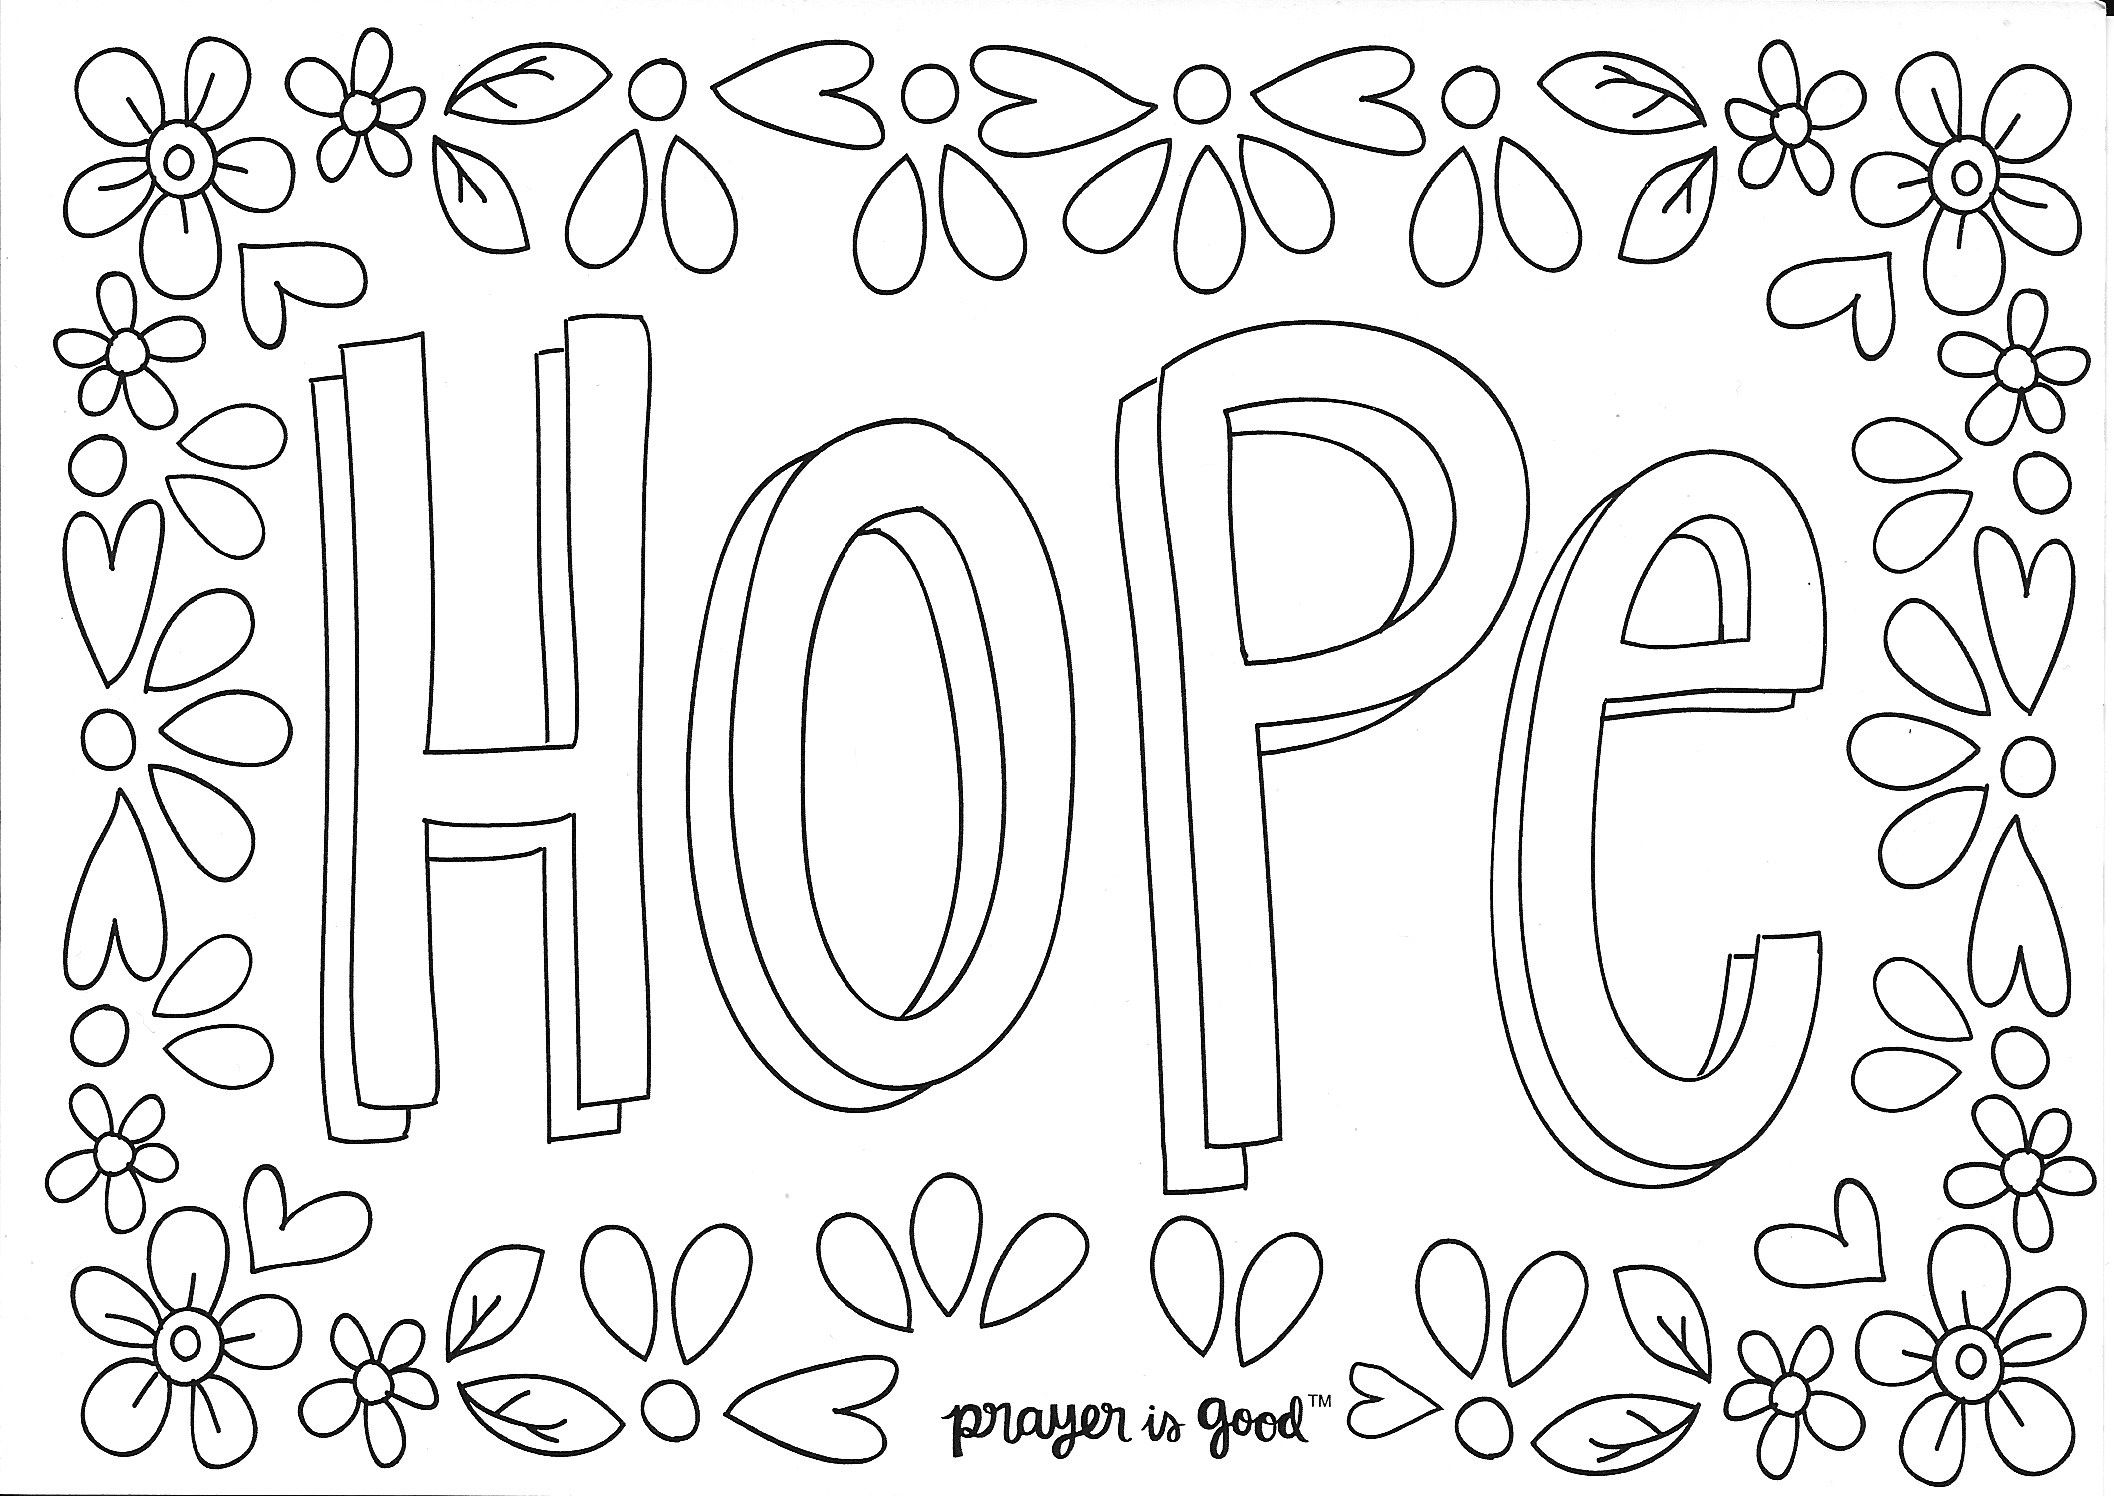 A Hopeful And Blank Canvas Color Our Hope Postcard And Send To Somebody In Need Of Hope Quote Coloring Pages Bible Coloring Pages Coloring Pages Inspirational